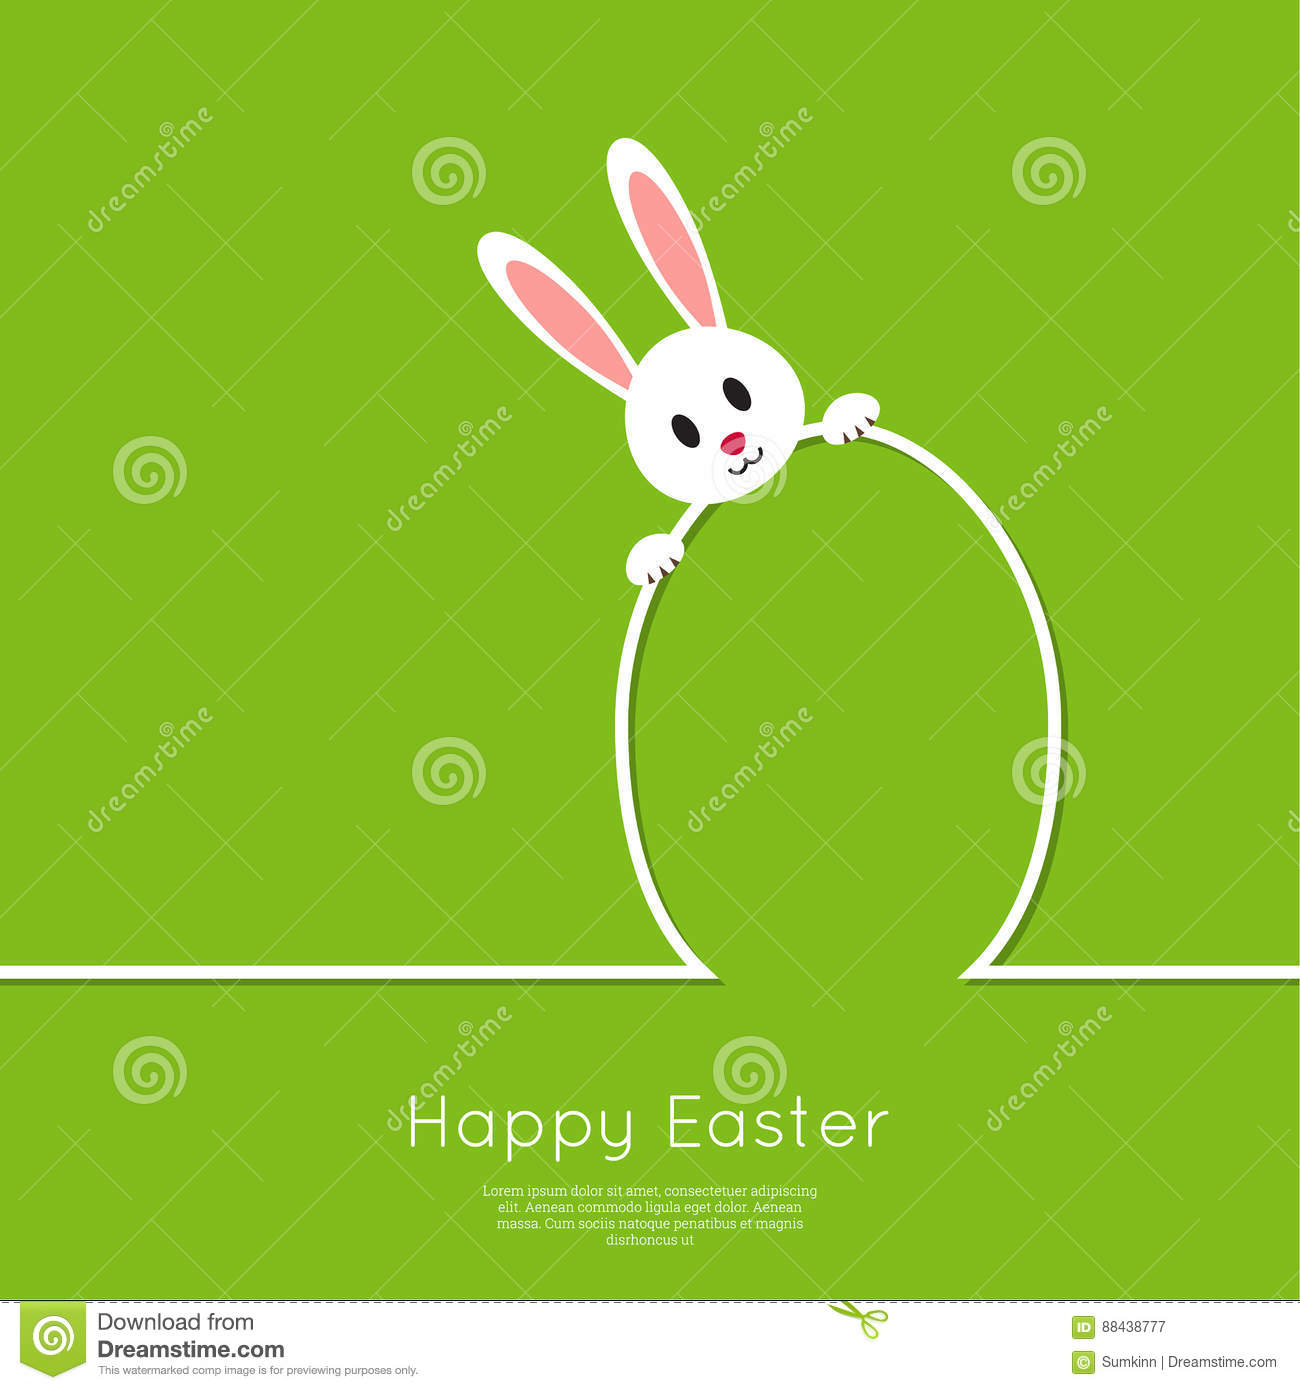 Happy easter cards stock vector illustration of hunt 88438777 happy easter cards kristyandbryce Gallery